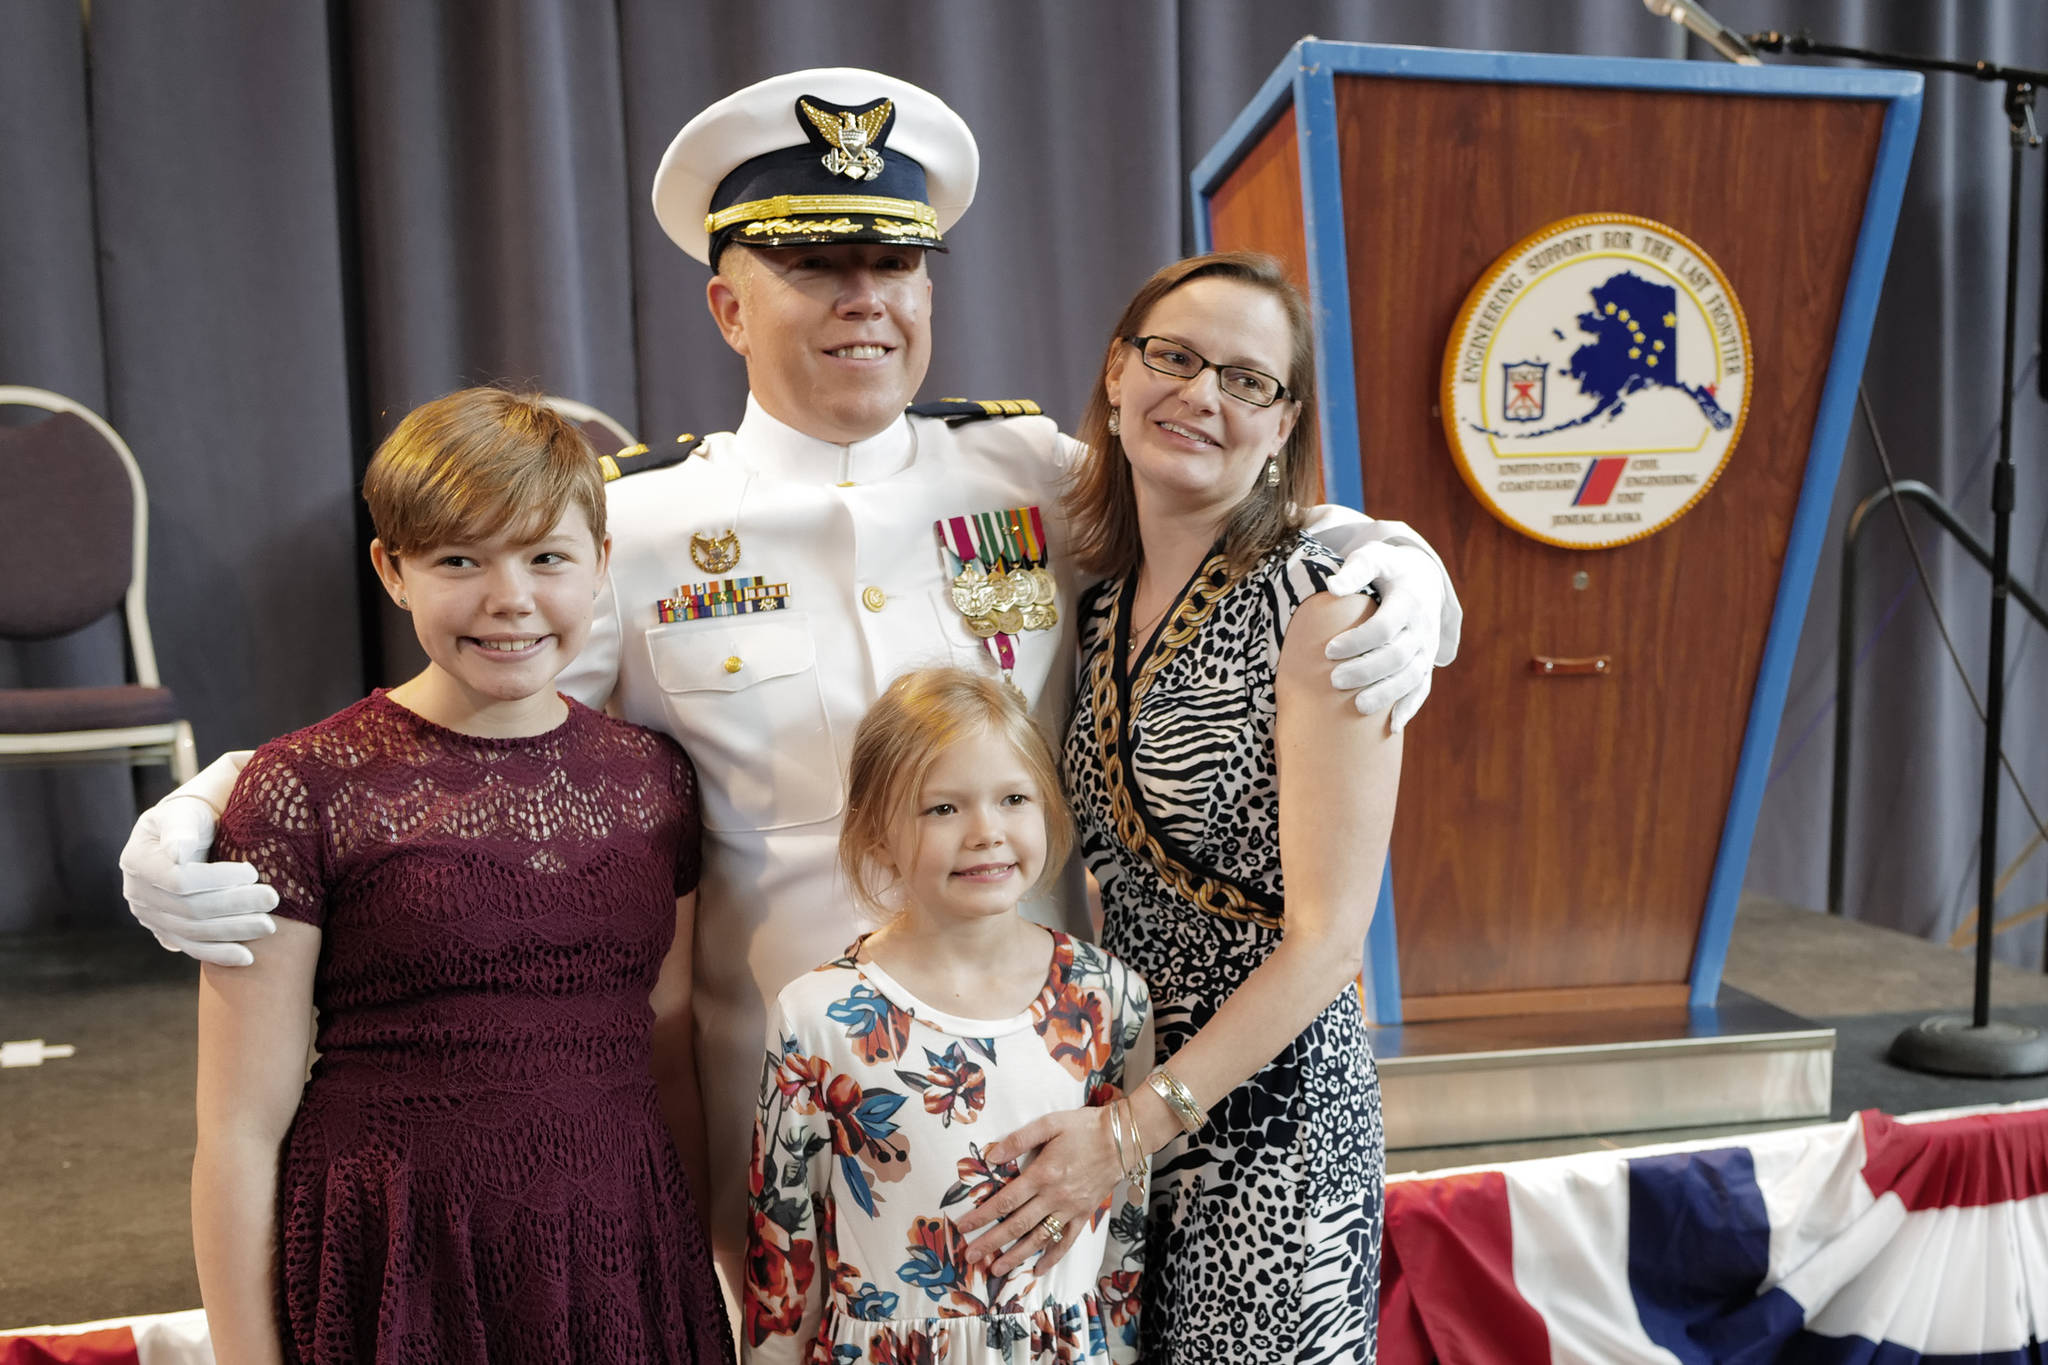 U.S. Coast Guard Commander Andrew S. Joca poses with his wife, Katie, and daughters, Molly, 11, and Amelia, 8, after a Change of Command ceremony at the Juneau Arts and Culture Center on Thursday, June 20, 2019. (Michael Penn | Juneau Empire)